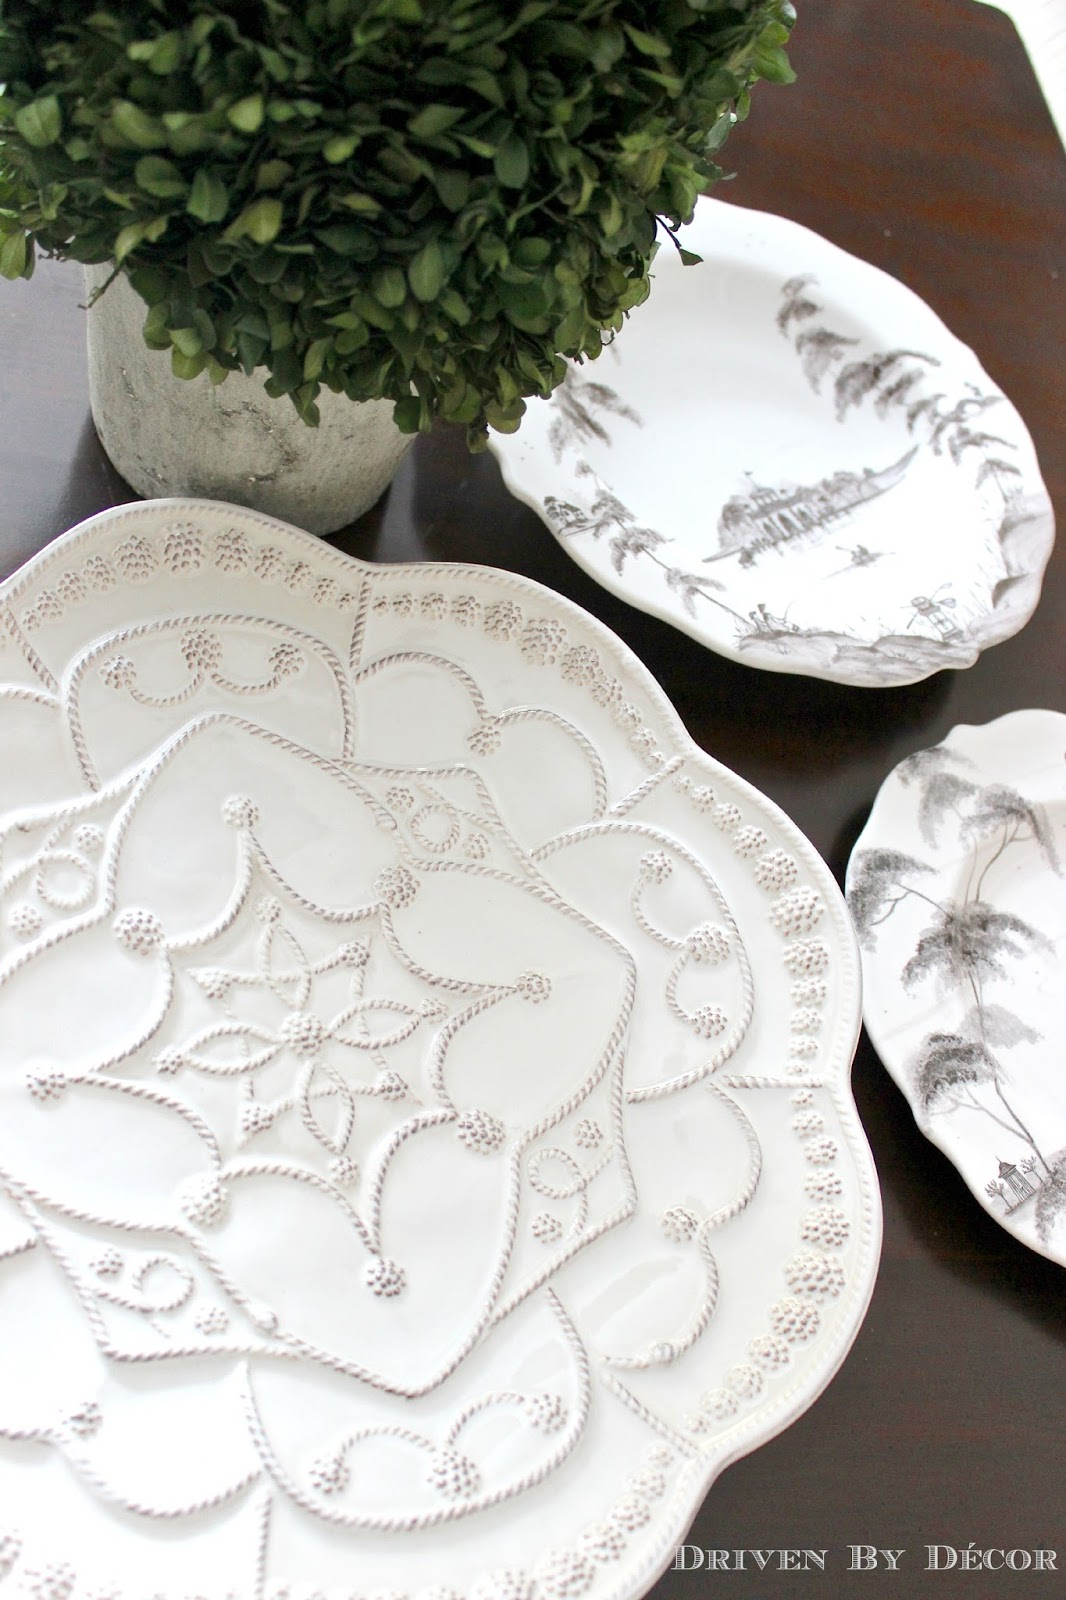 Hang Plates On Wall the easy how-to for hanging plates on the wall! | drivendecor